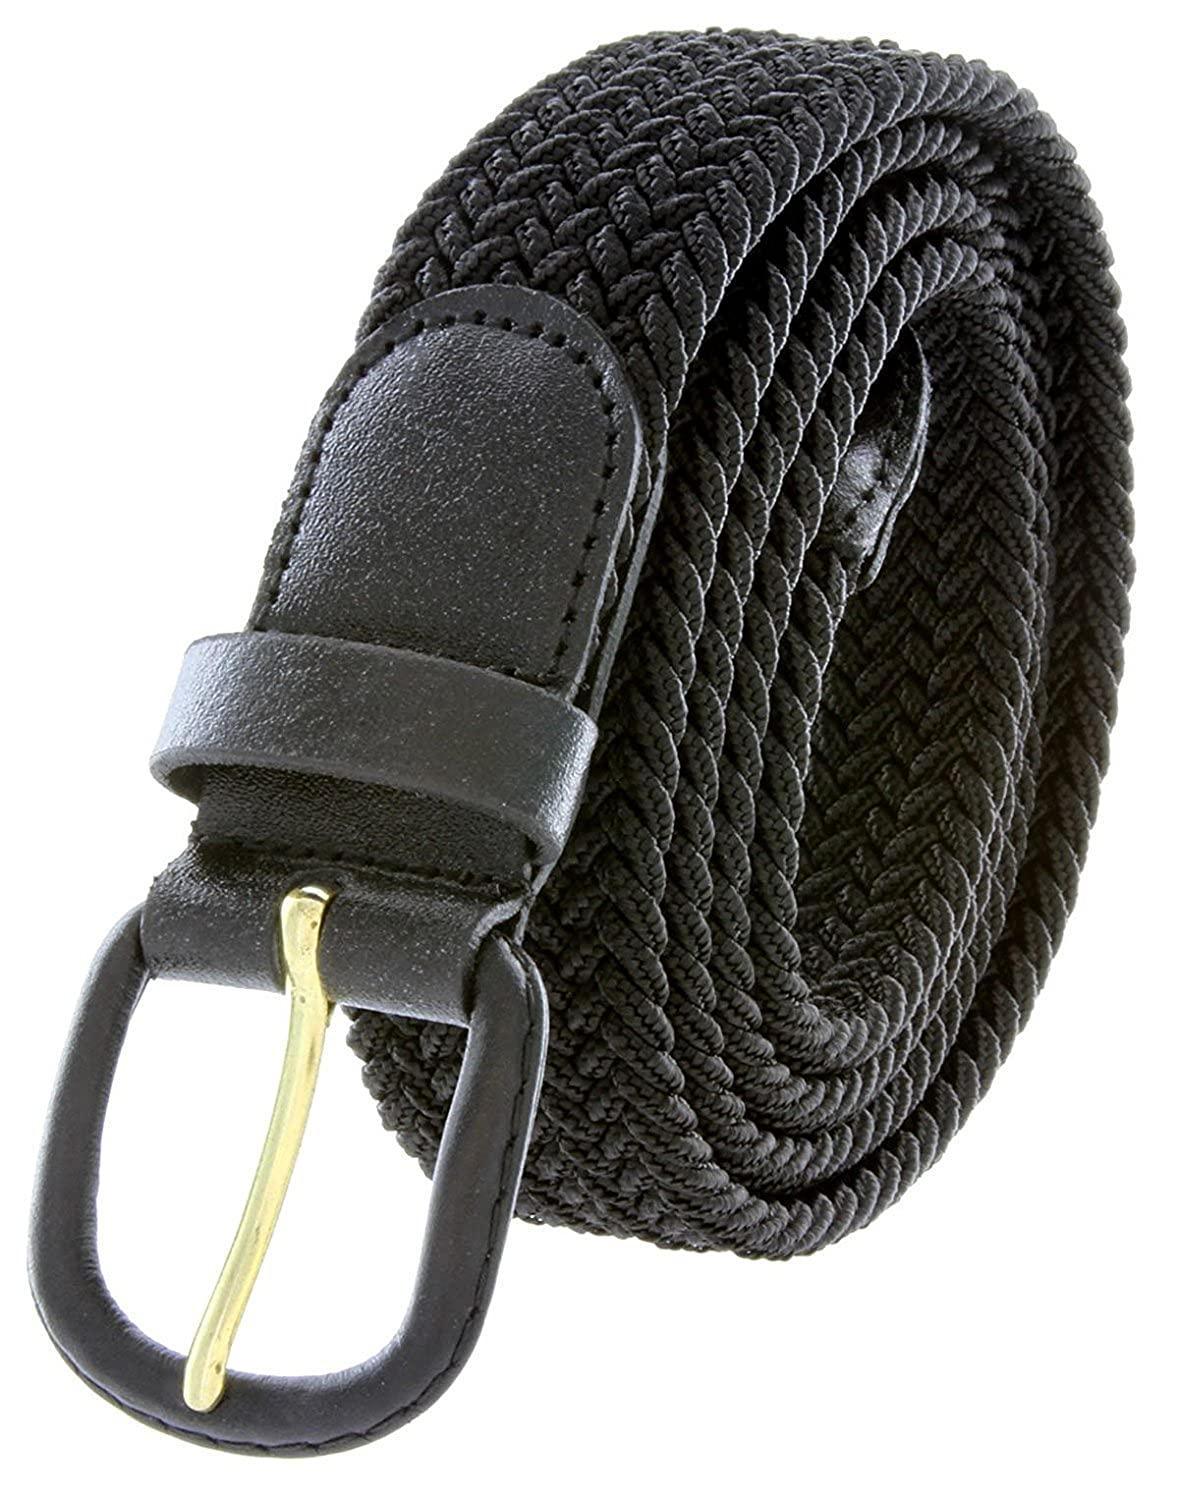 Hagora Men Stretch Comfy Braided Fabric 1-1//4 Wide Leather Covered Buckle Belt